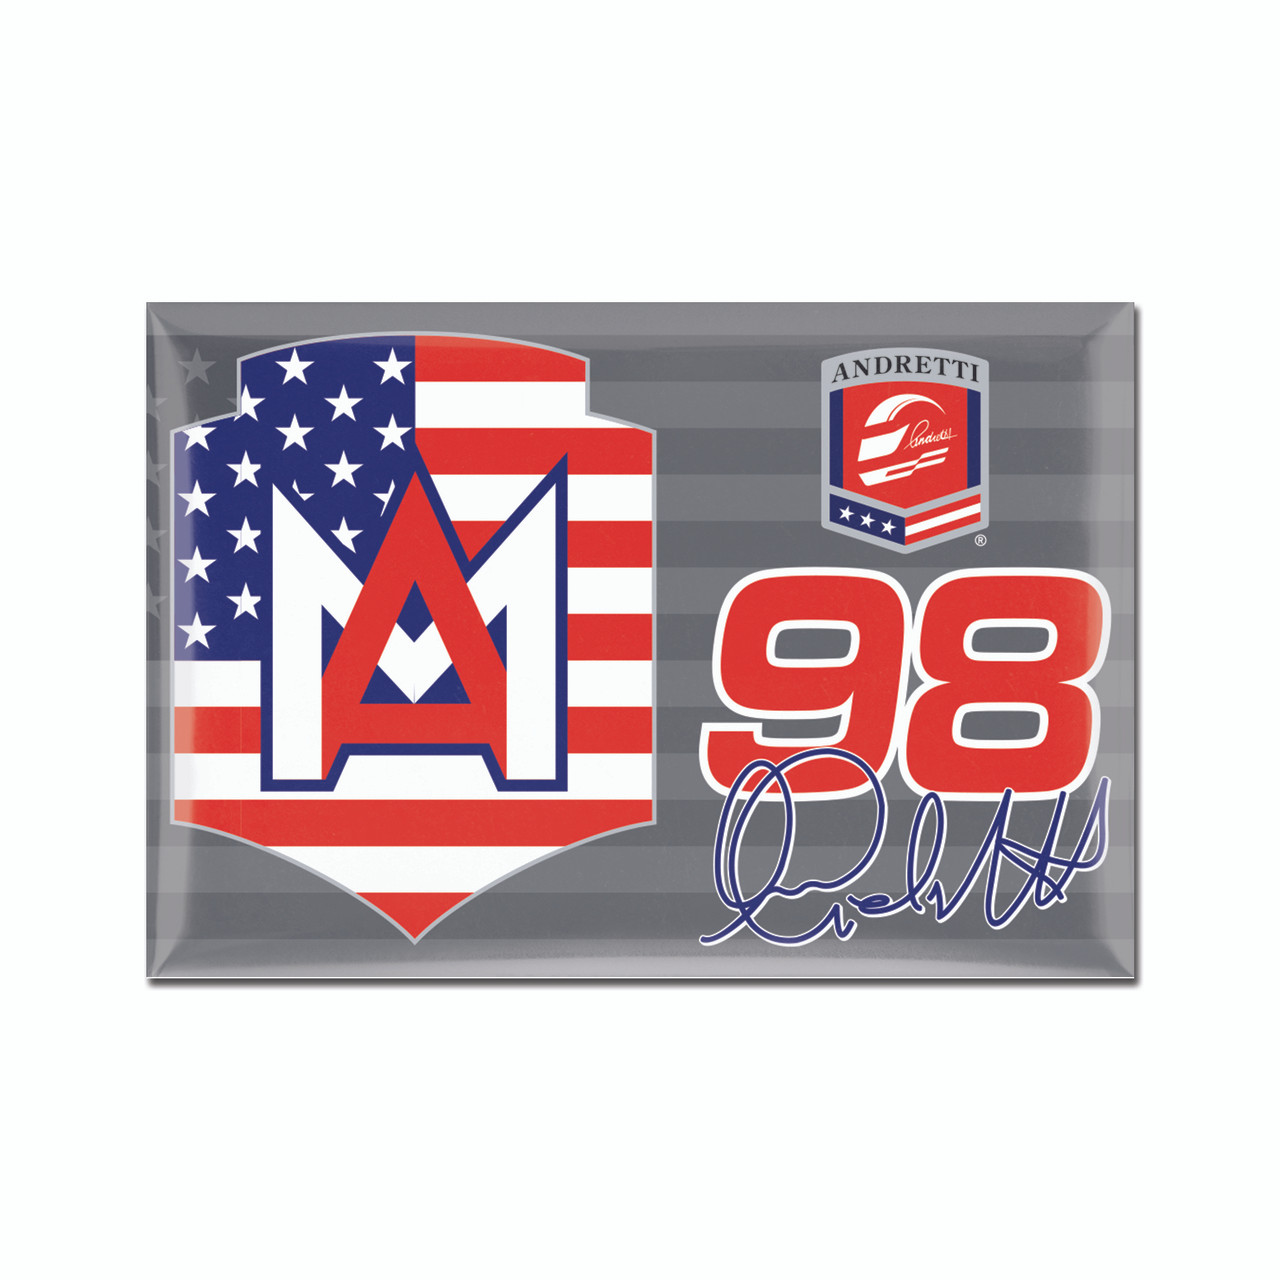 Marco Andretti 2x3 Driver Magnet - Indianapolis Motor Speedway/INDYCAR